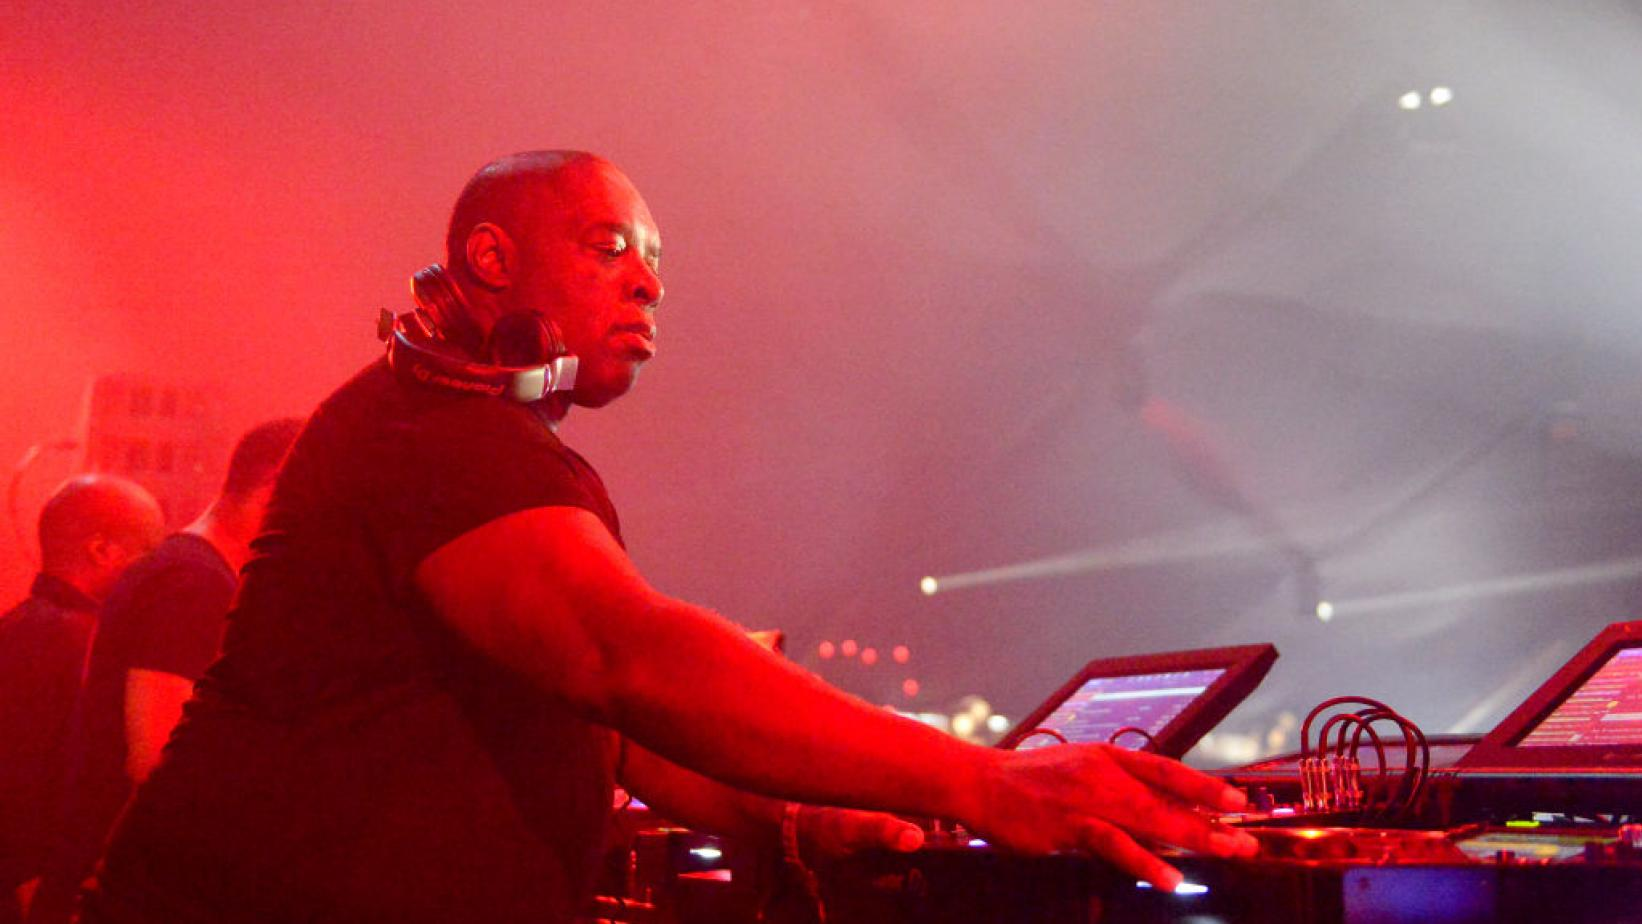 Kevin Saunderson at Coachella 2017